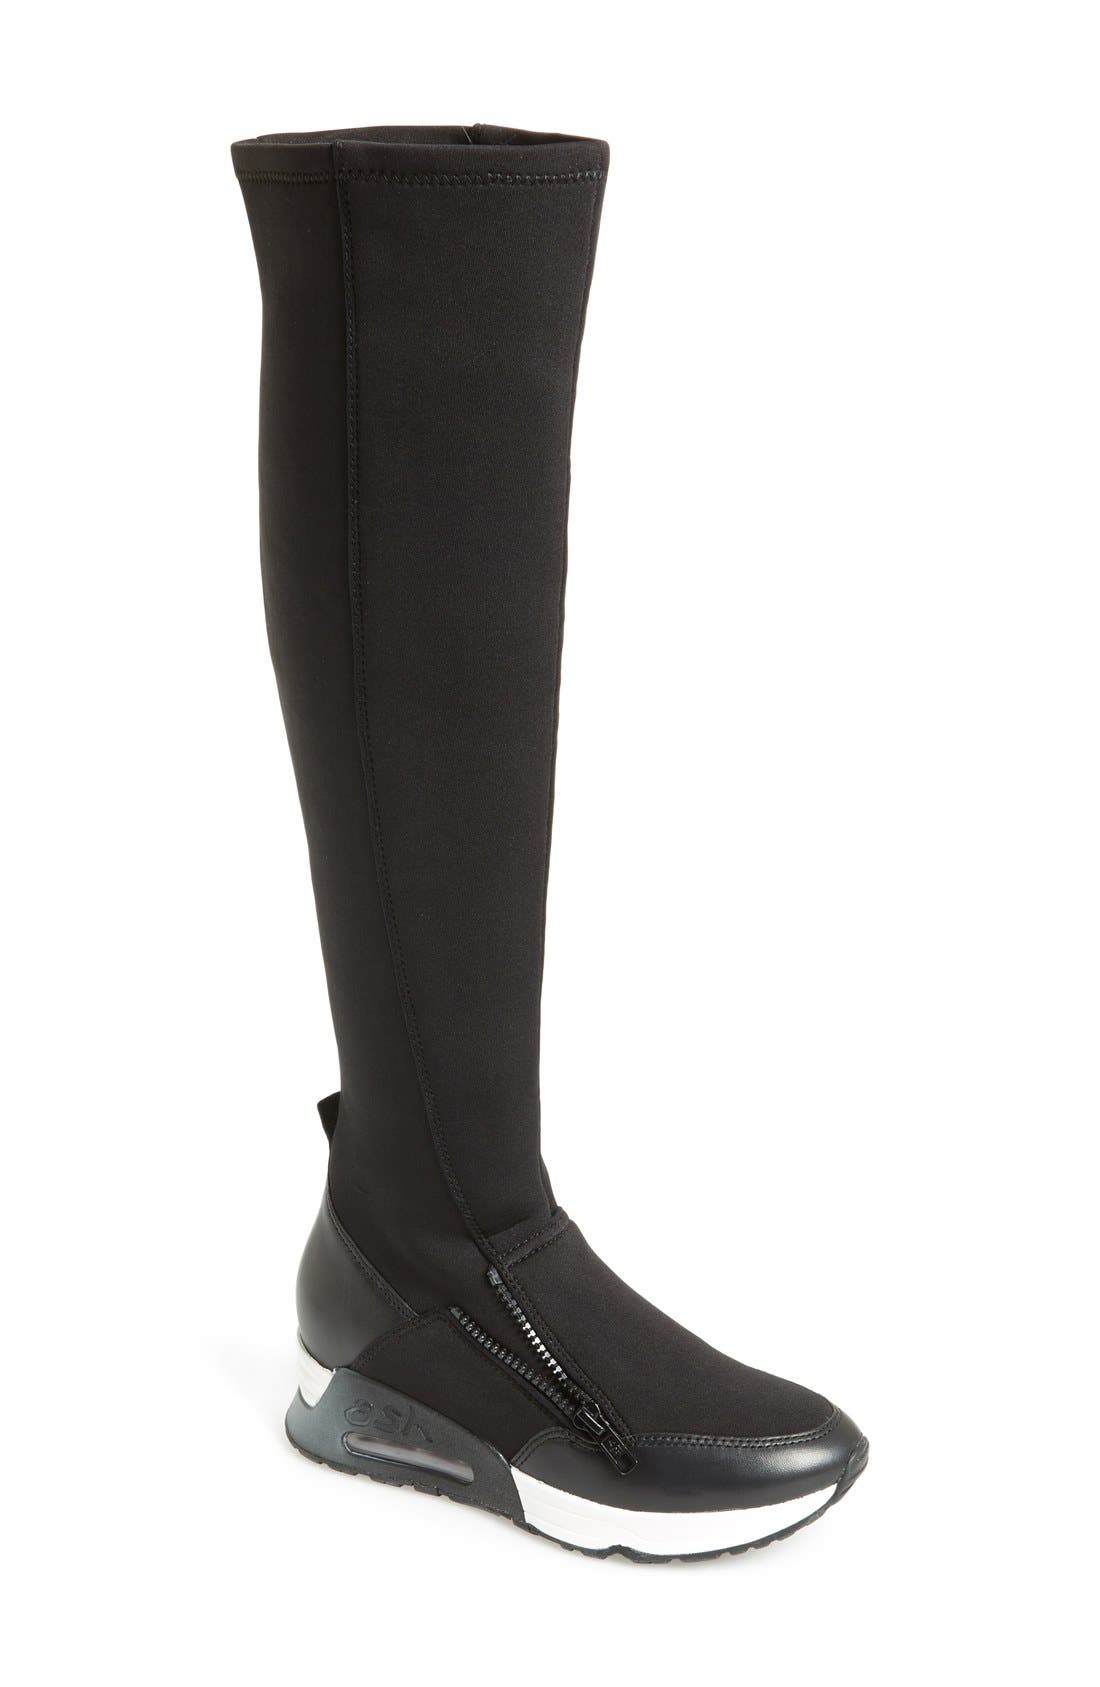 Alternate Image 1 Selected - Ash 'Lynx' Stretch Fabric Tall Sneaker Boot (Women)